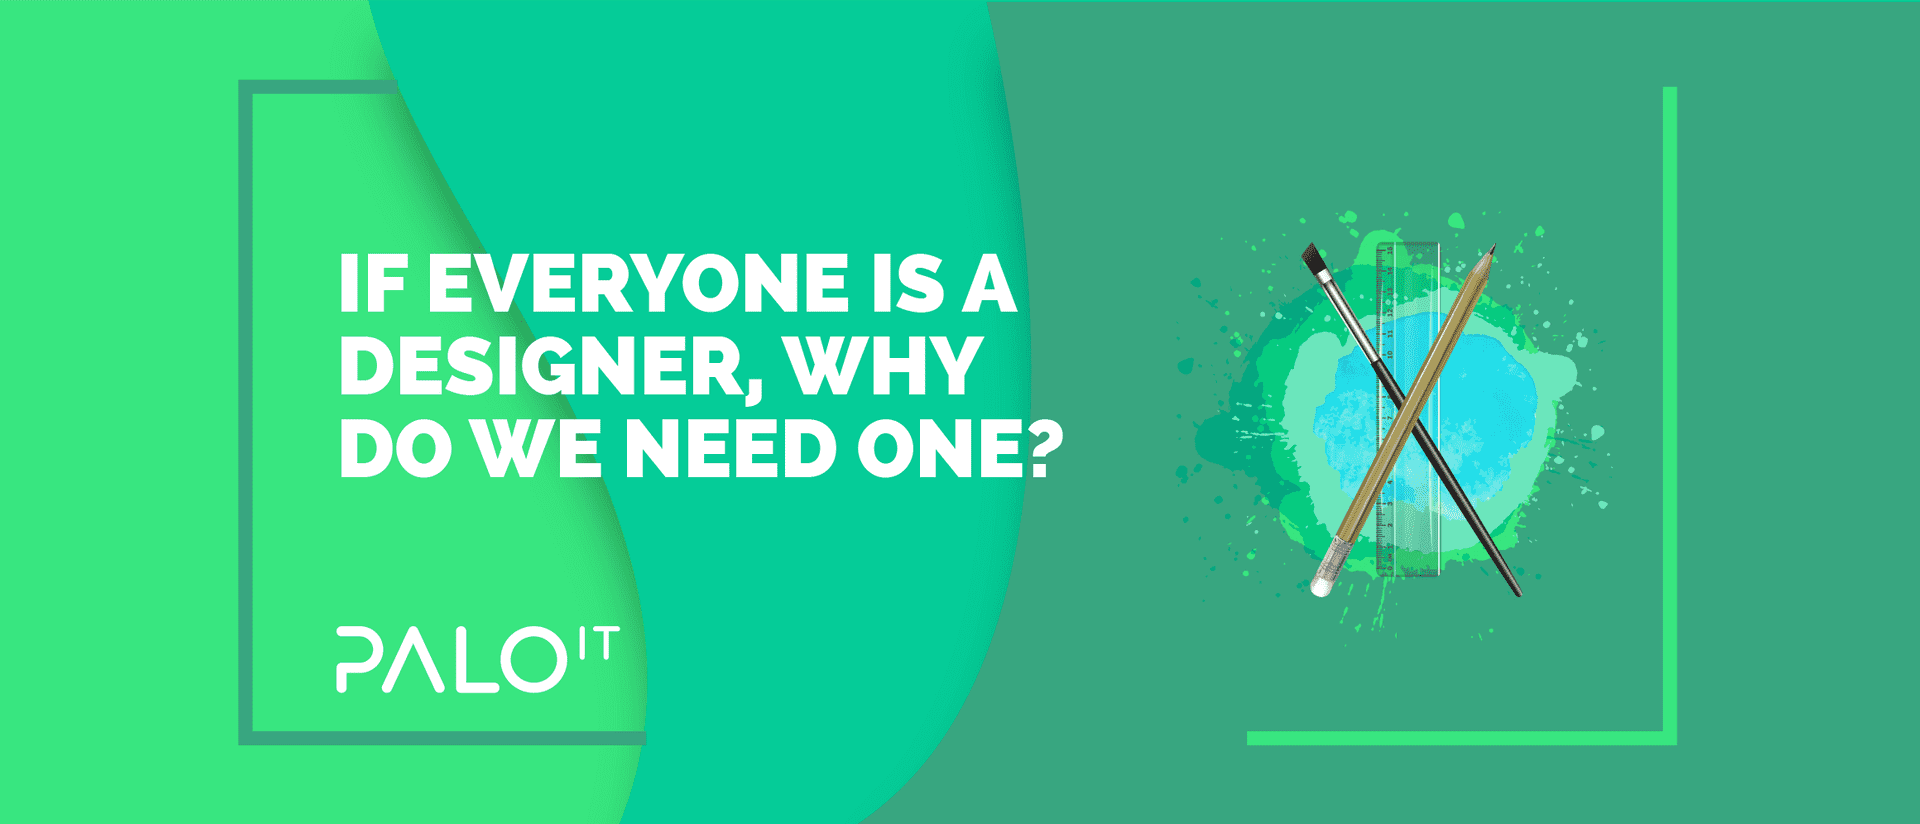 If Everyone Is a Designer, Why Do We Need One?